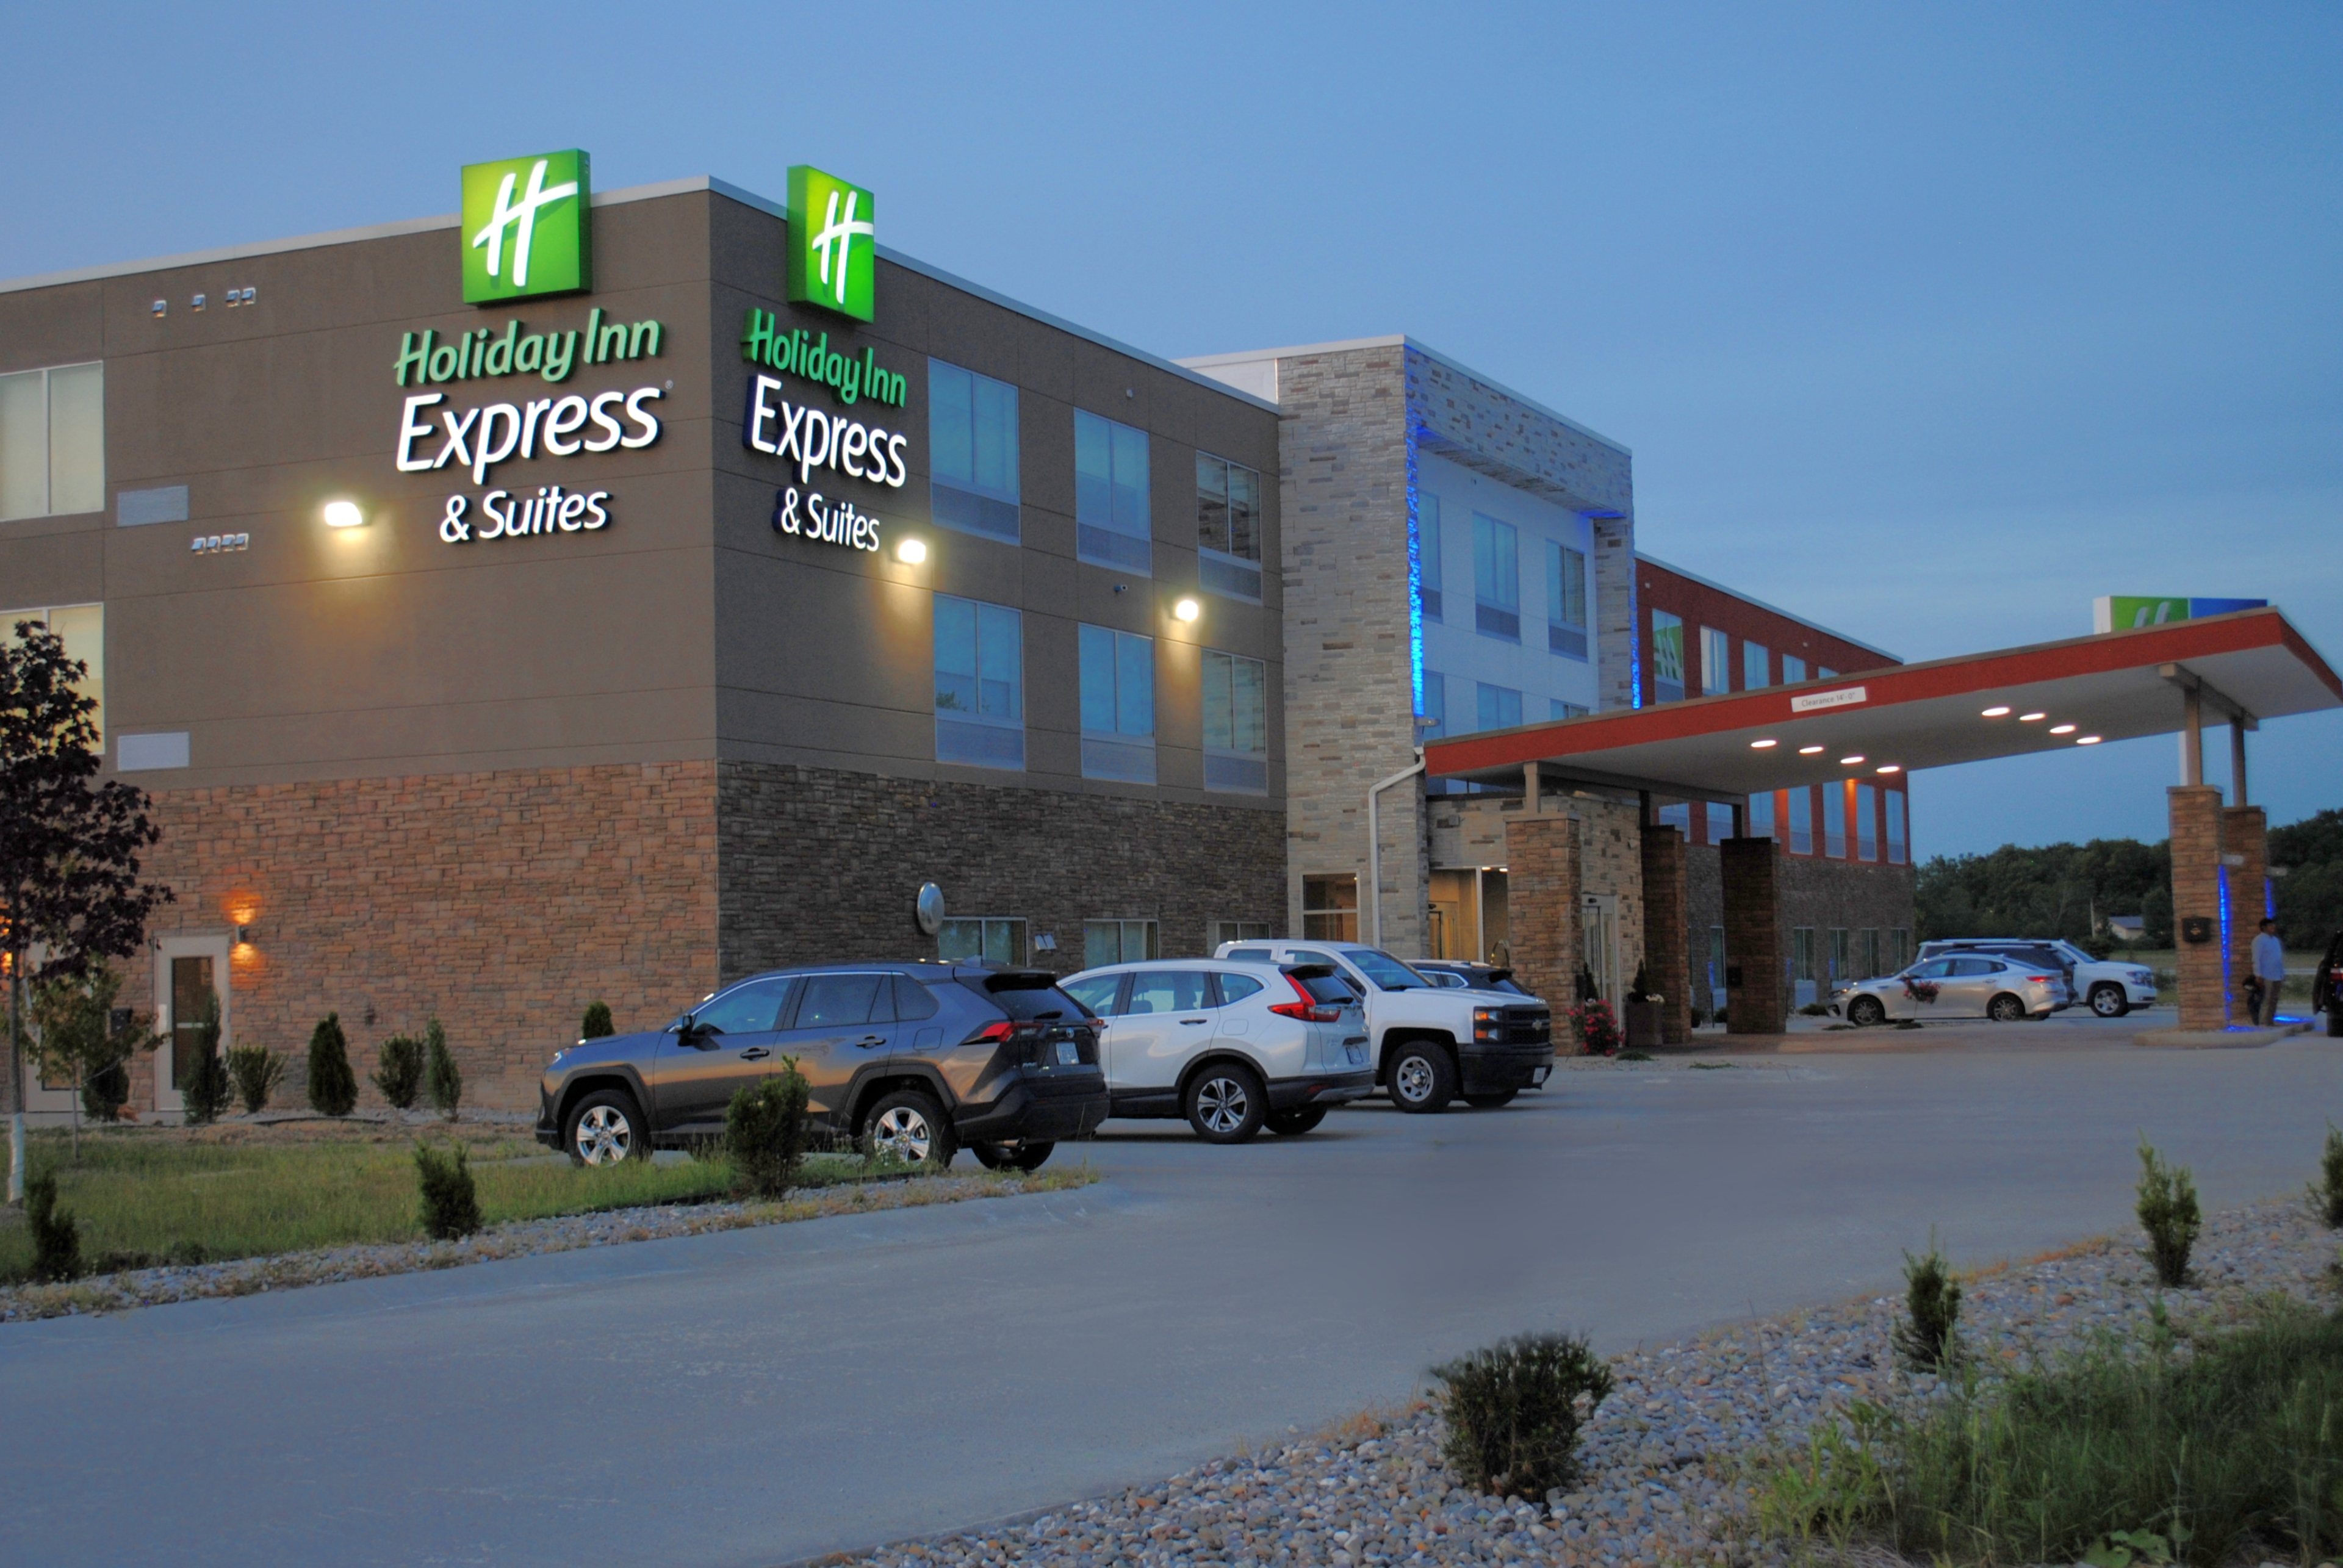 Holiday Inn Express & Suites - Columbia City